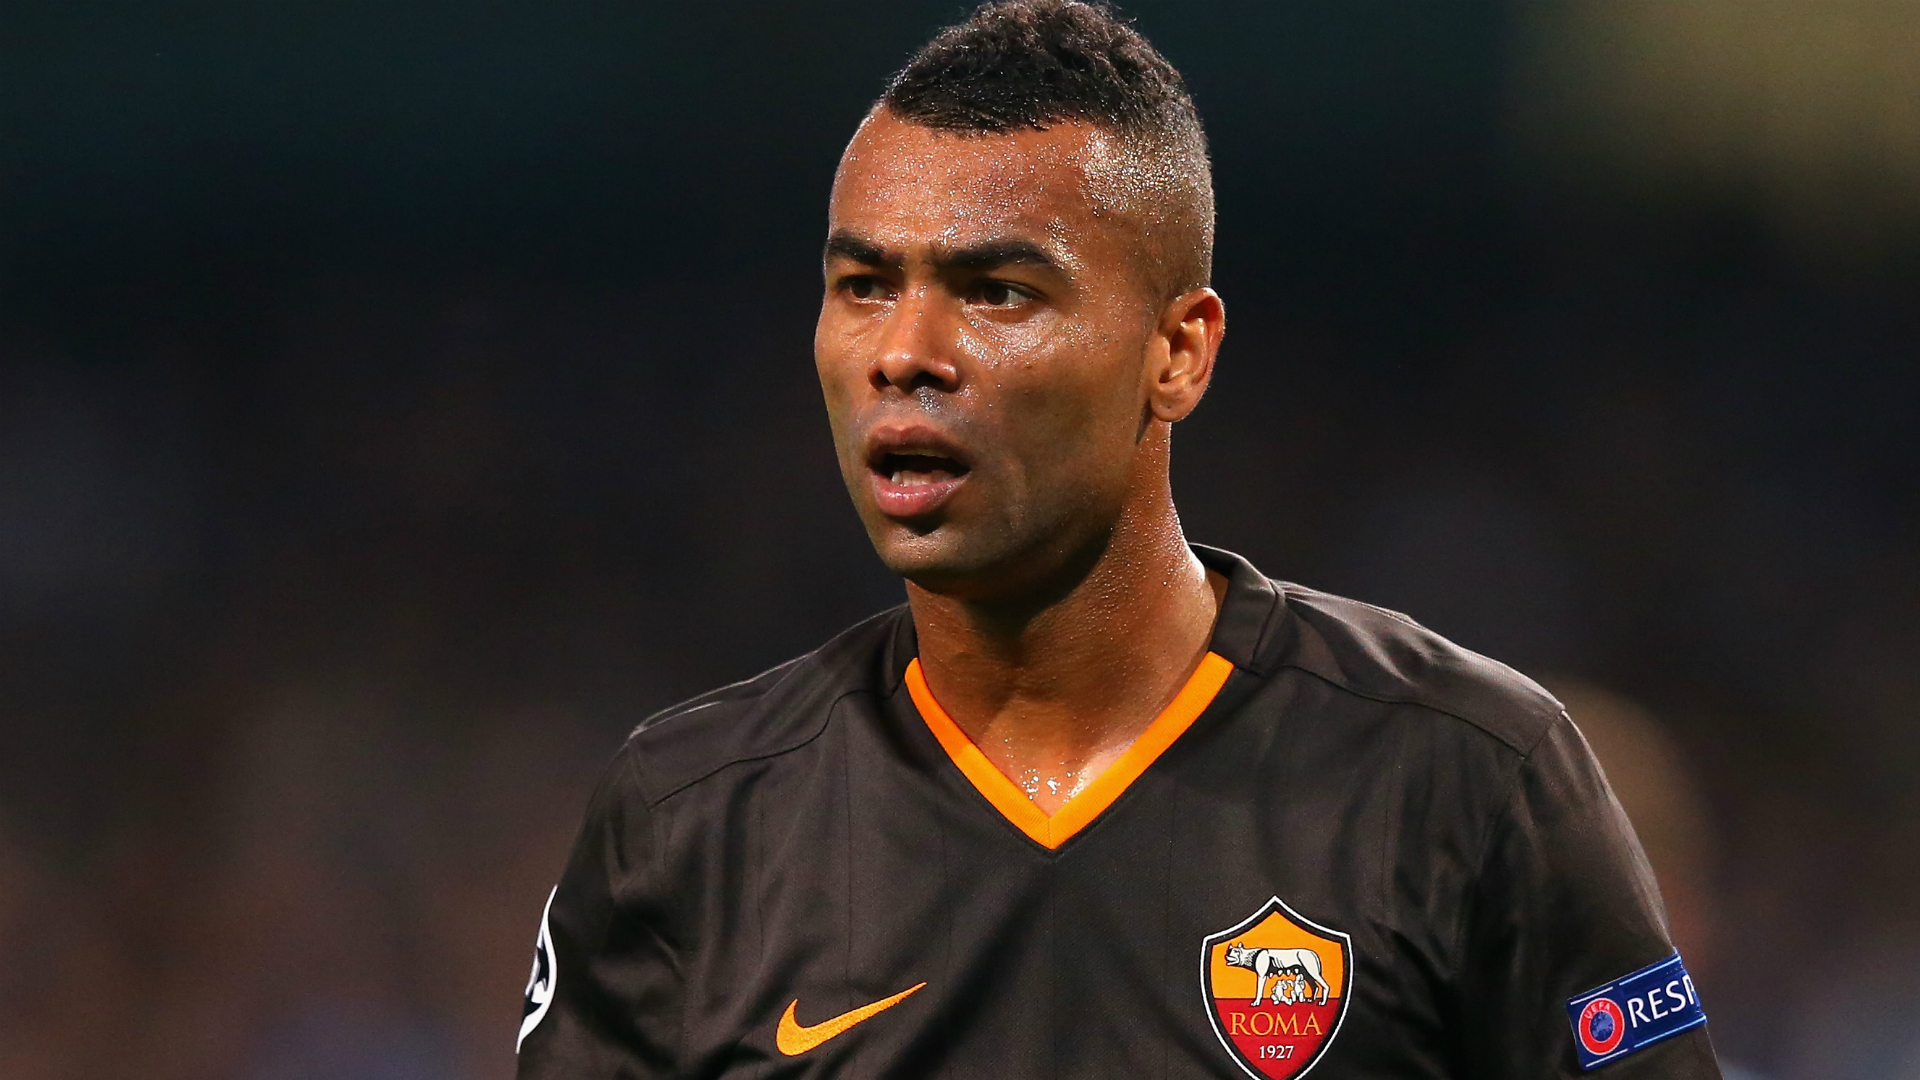 England s Ashley Cole close to signing with LA Galaxy according